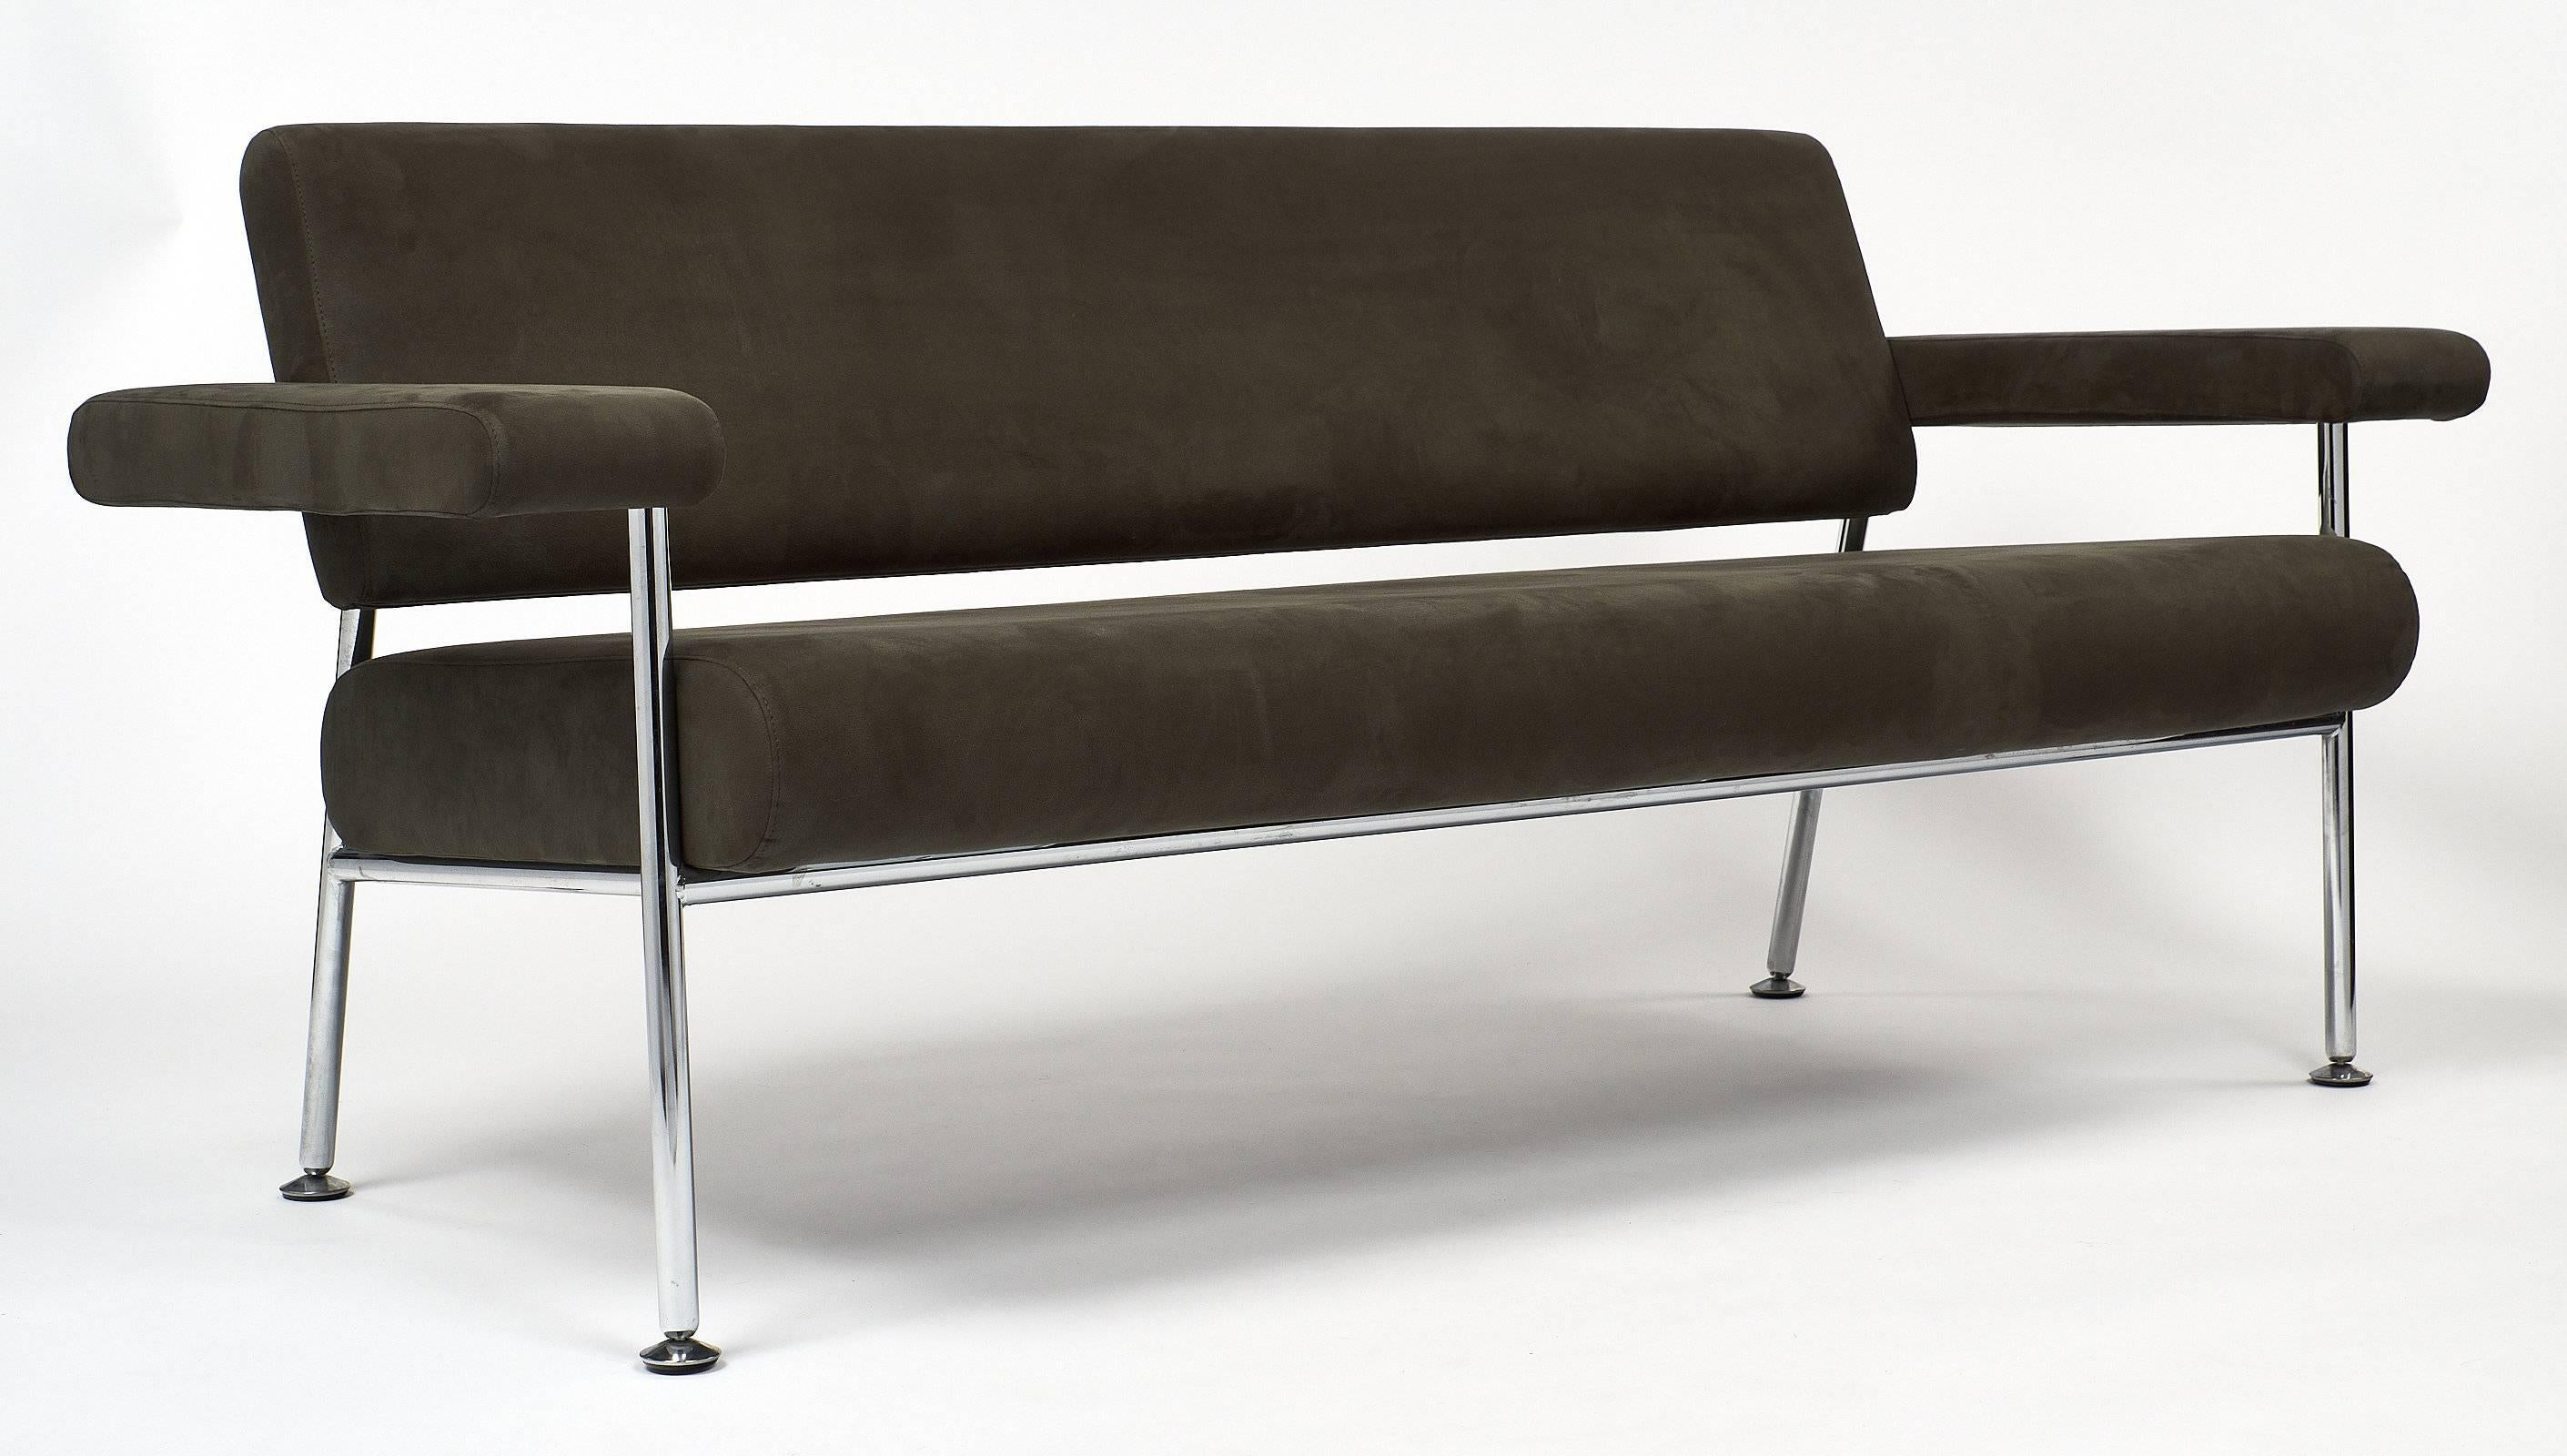 French Chrome And Ultrasuede Vintage Modernist Sofa For Sale